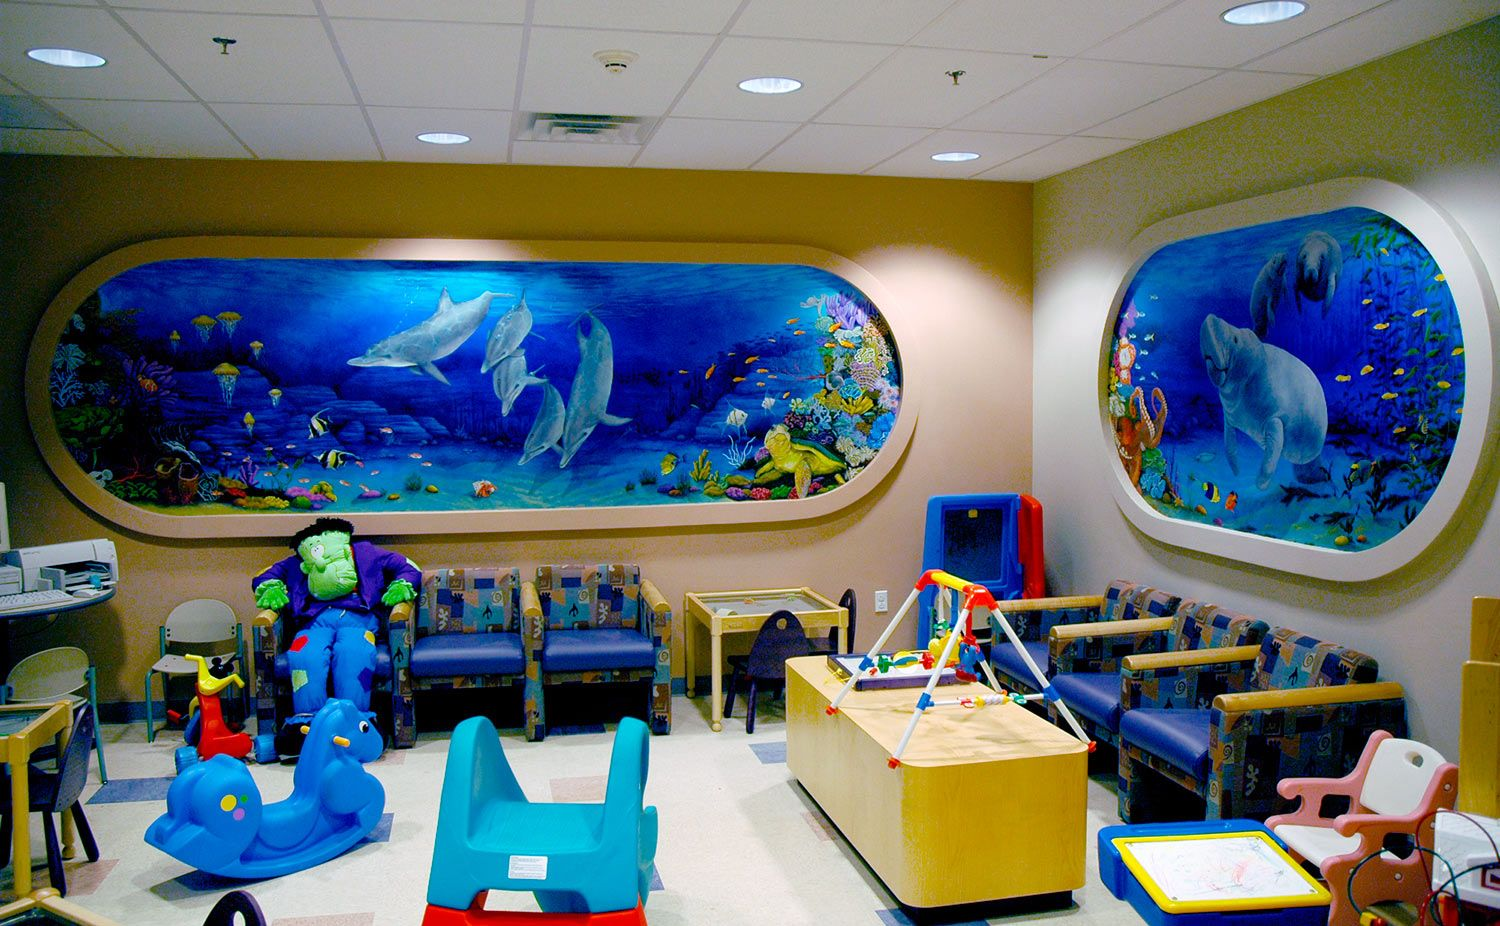 Basement mural idea basement idea pinterest basements for Children wall mural ideas